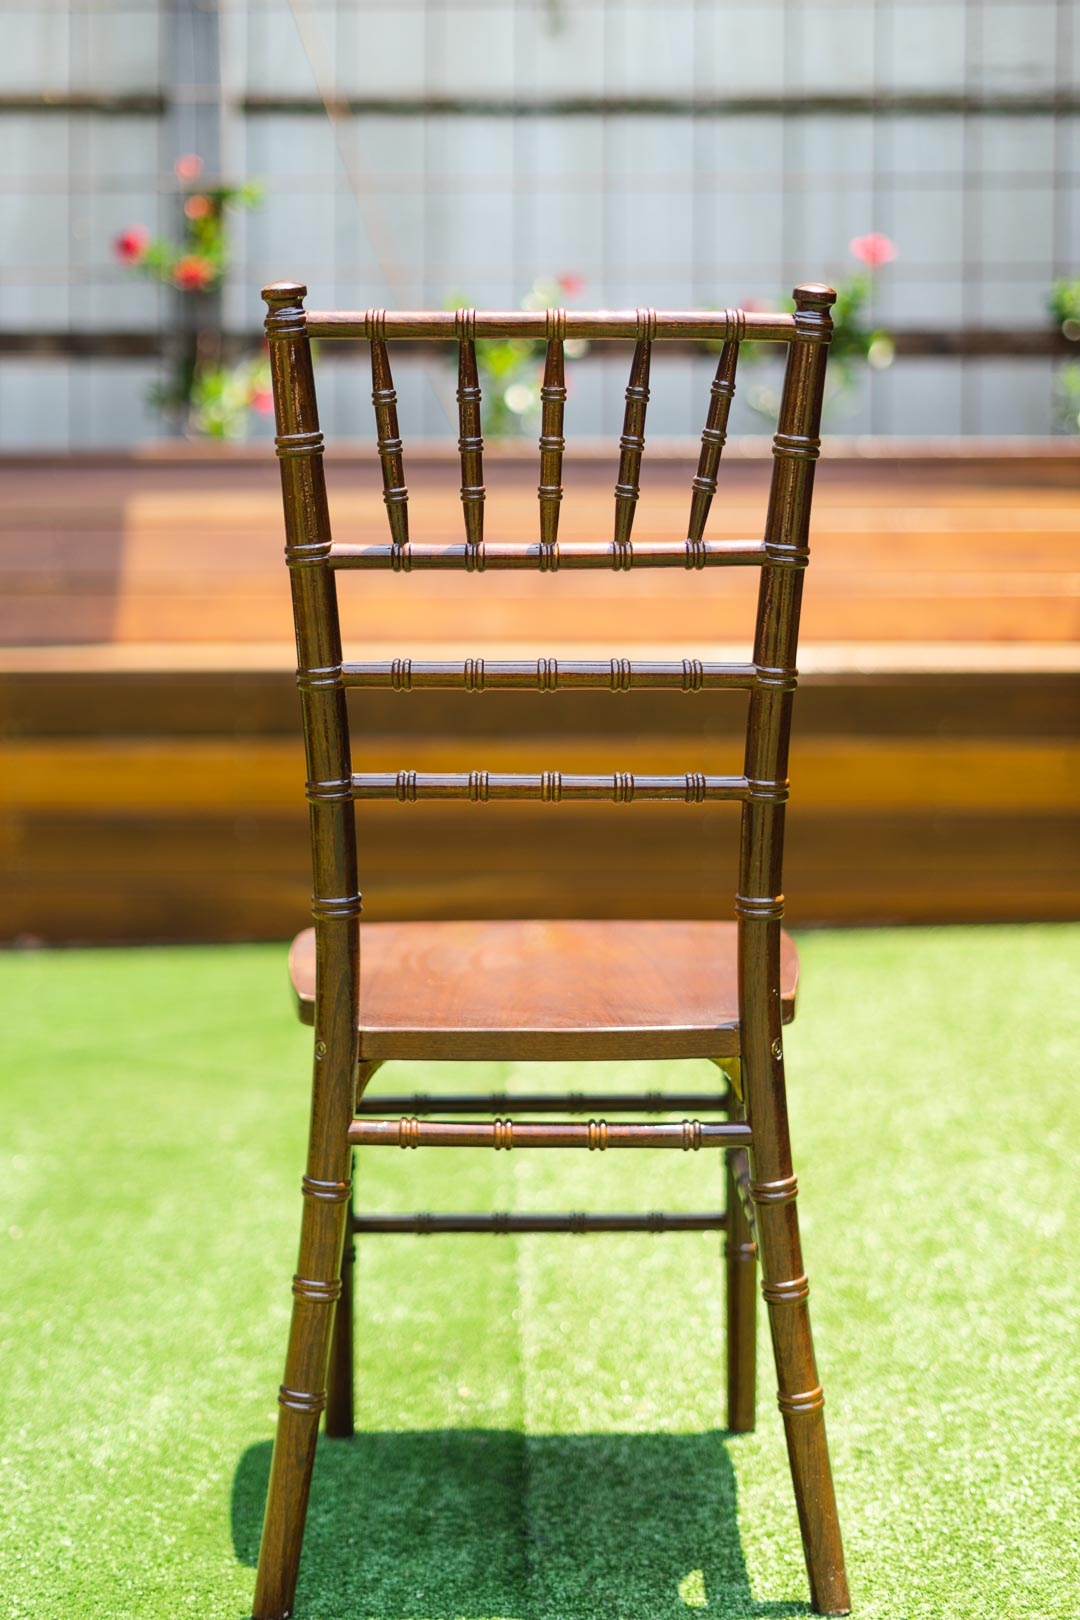 Walnut Tiffany Chair | Timber 6 per box @ $65 each =$390